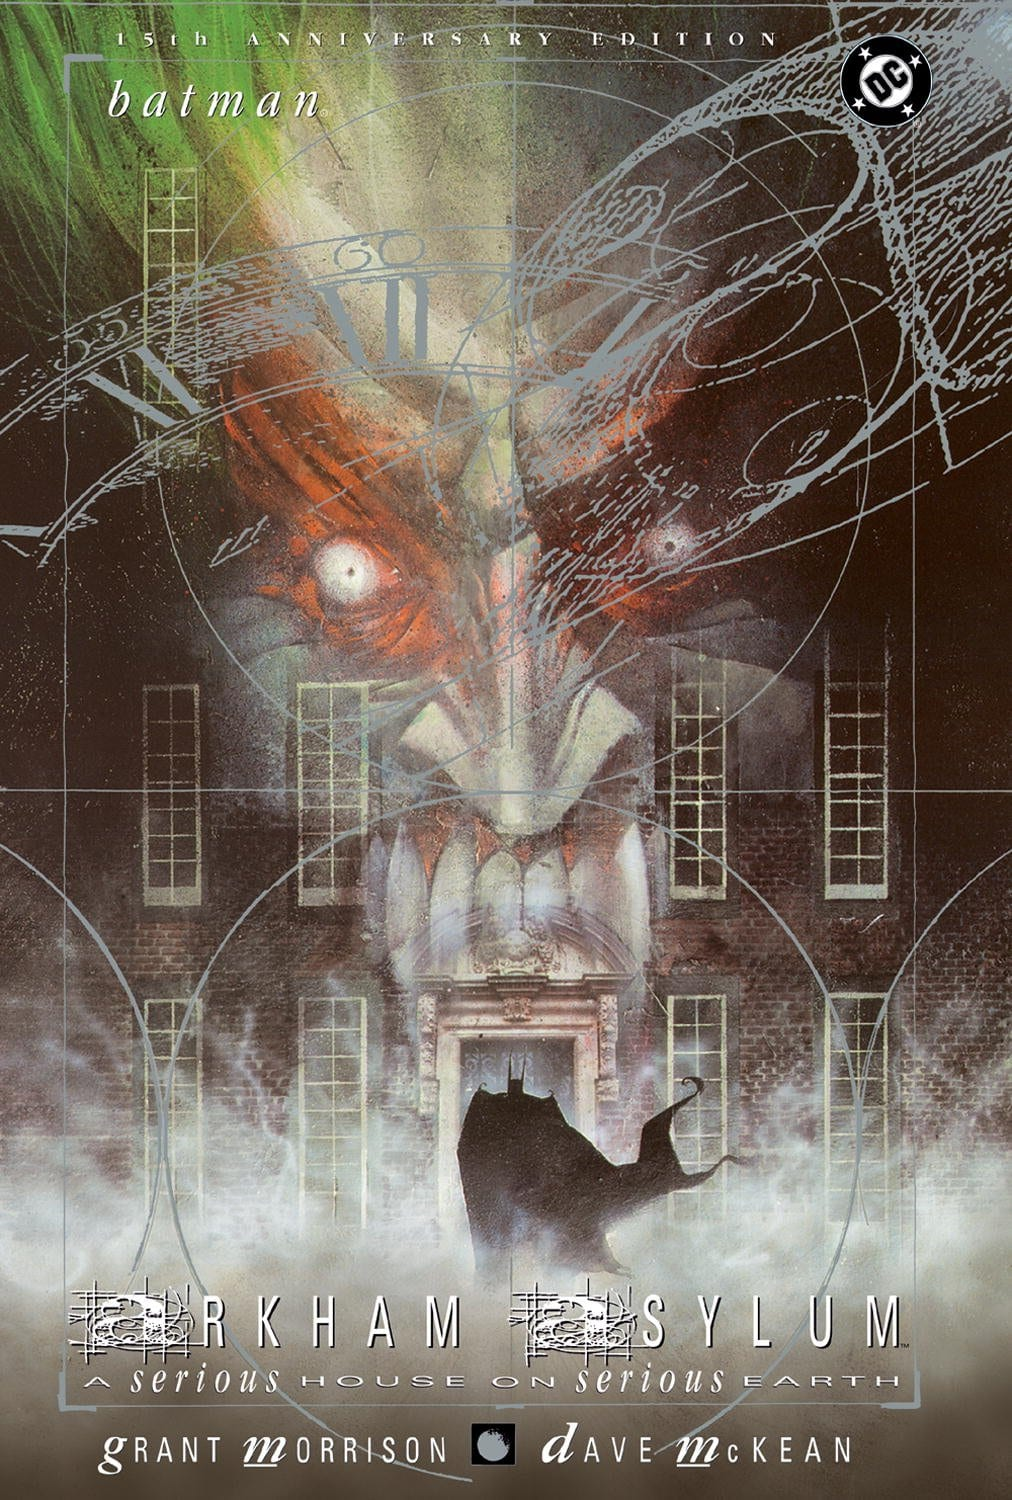 30 Years of ARKHAM ASYLUM: A SERIOUS HOUSE ON A SERIOUS EARTH 2